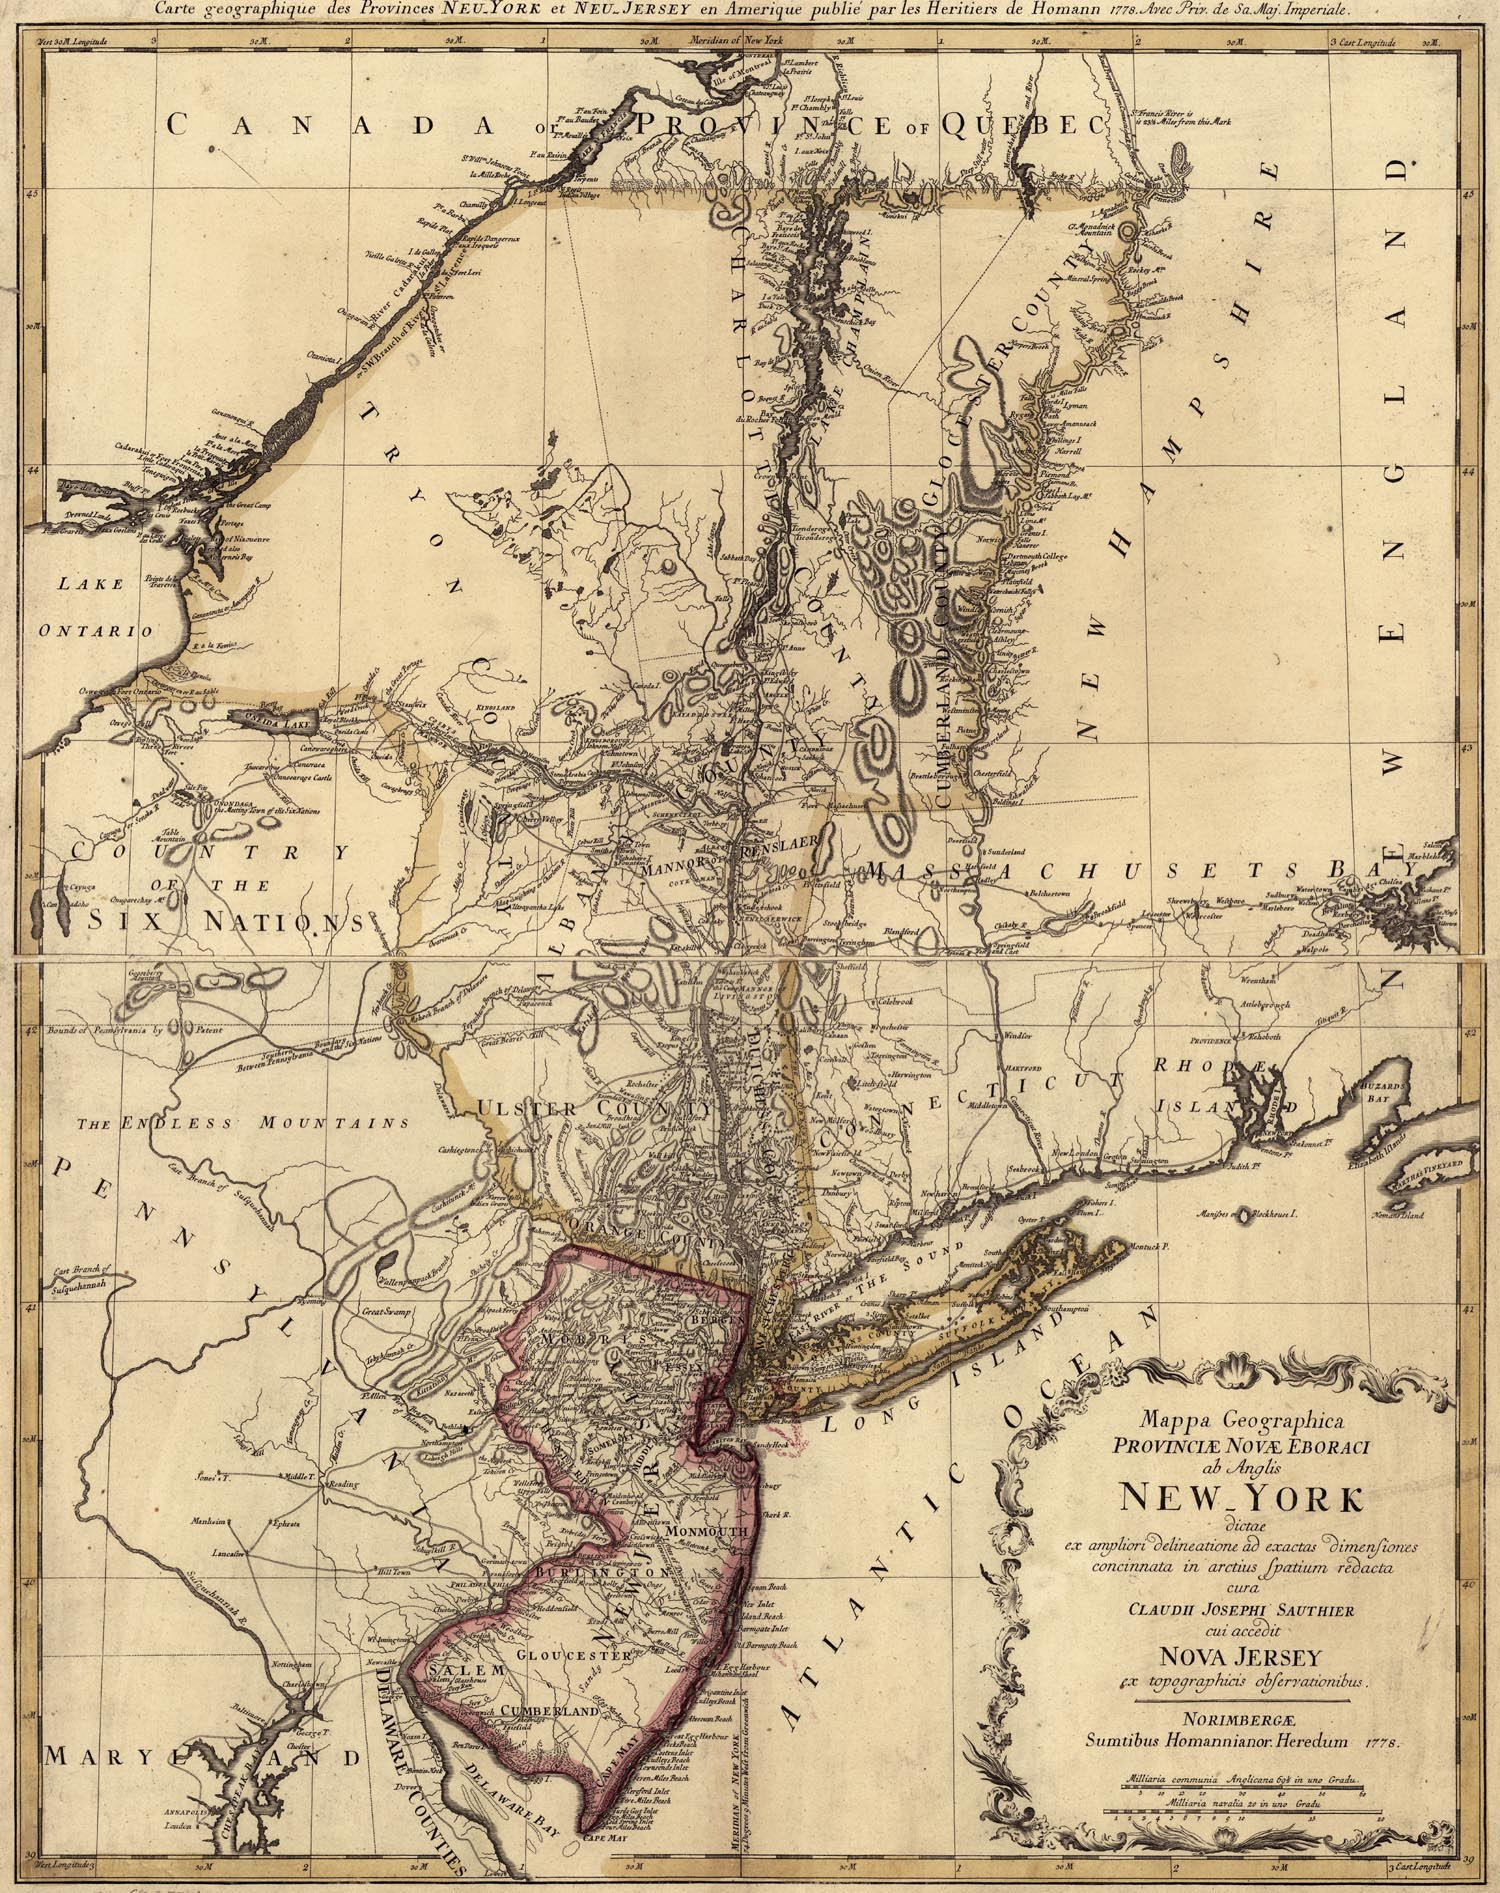 Revolutionary War Map Of New York.New York Map